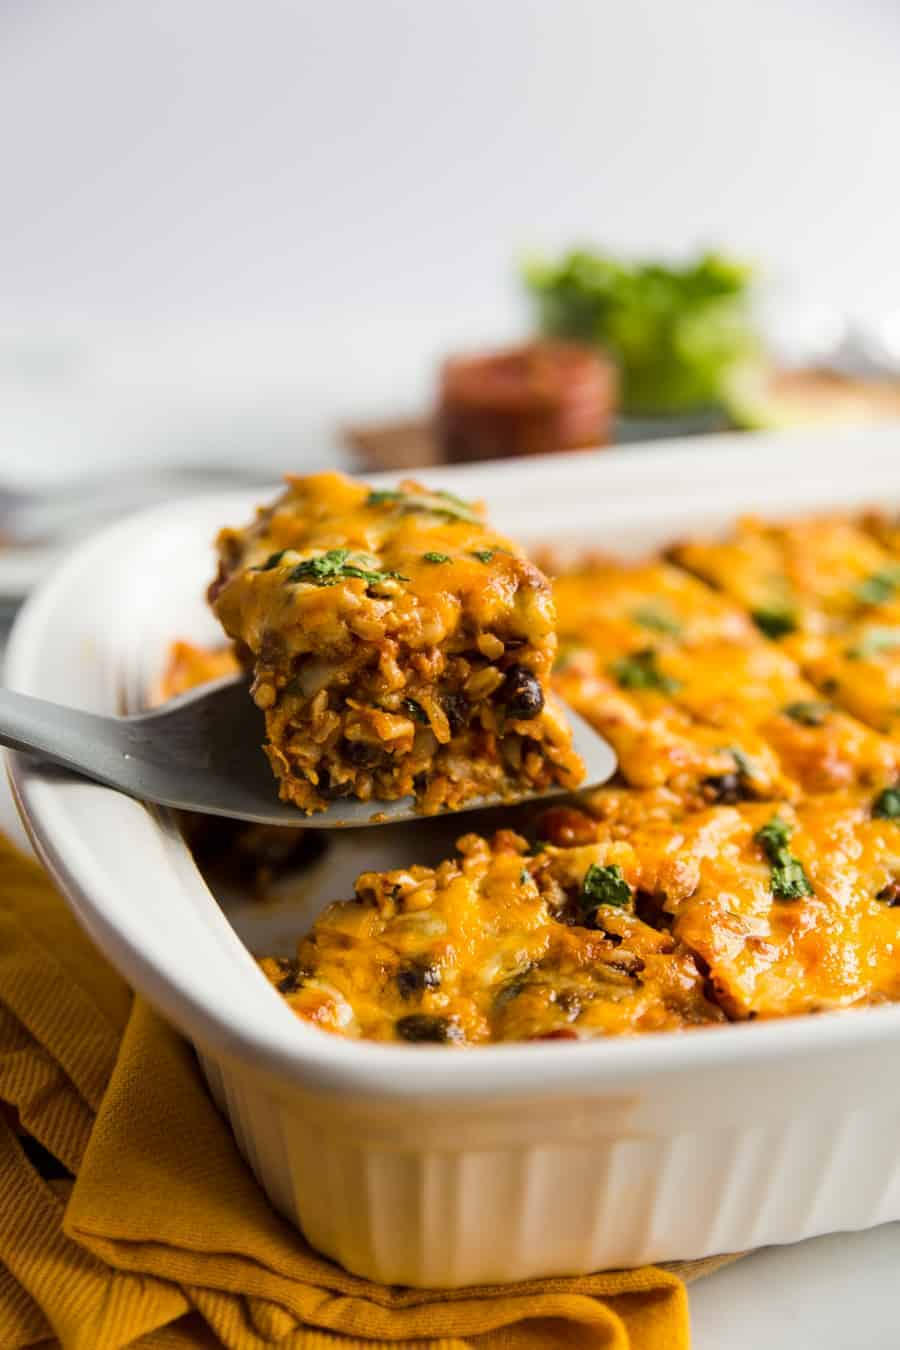 This easy, meatless meal is like a rice-and-bean-layered enchilada casserole. Topped with green or red enchilada sauce (you pick!) and cheese, you'll be satisfied with this savory rendition of a classic Tex-Mex dish.